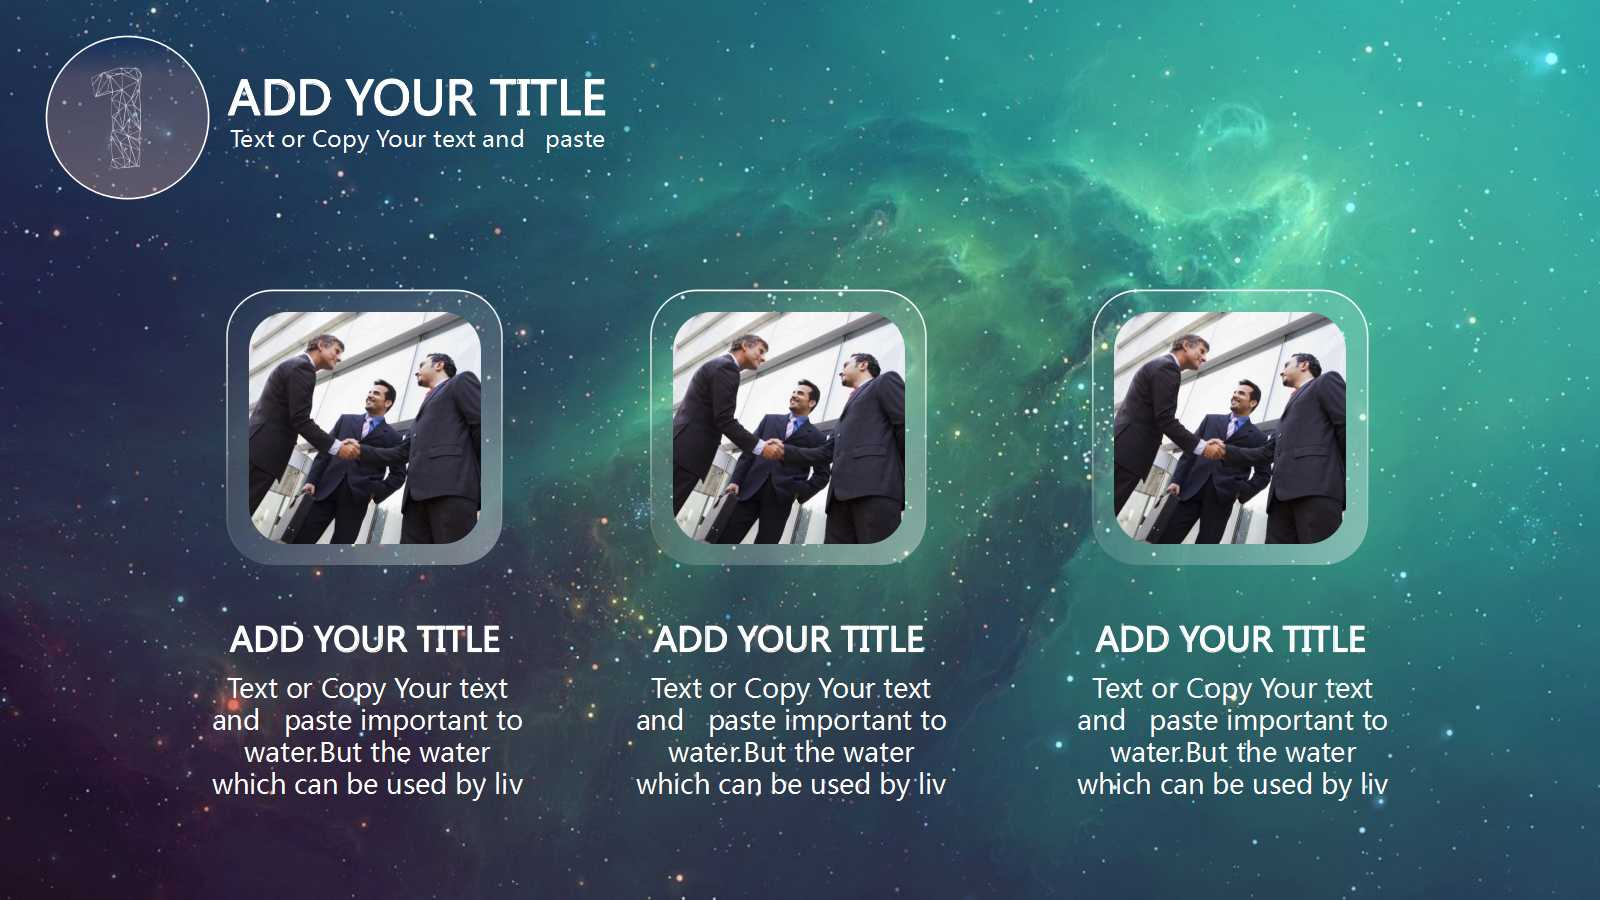 ios style general ppt template pptx